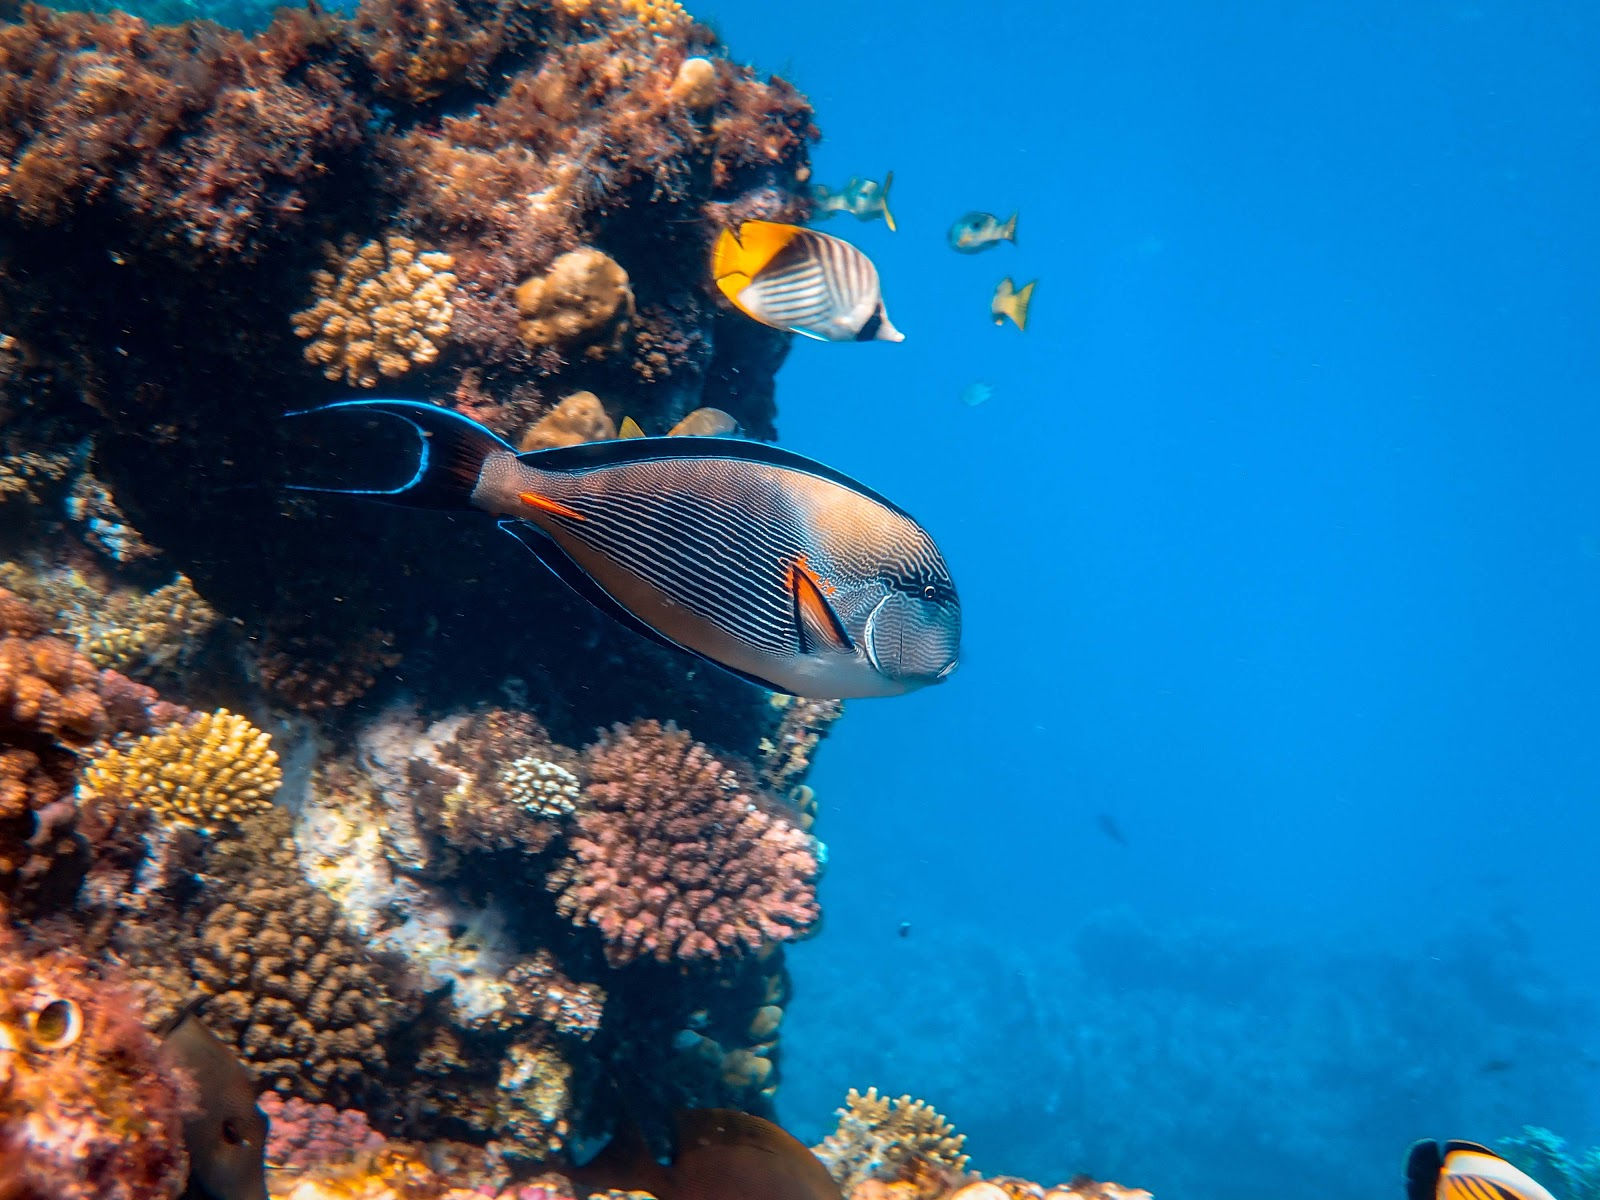 photo-of-fishes-near-coral-reefs-images